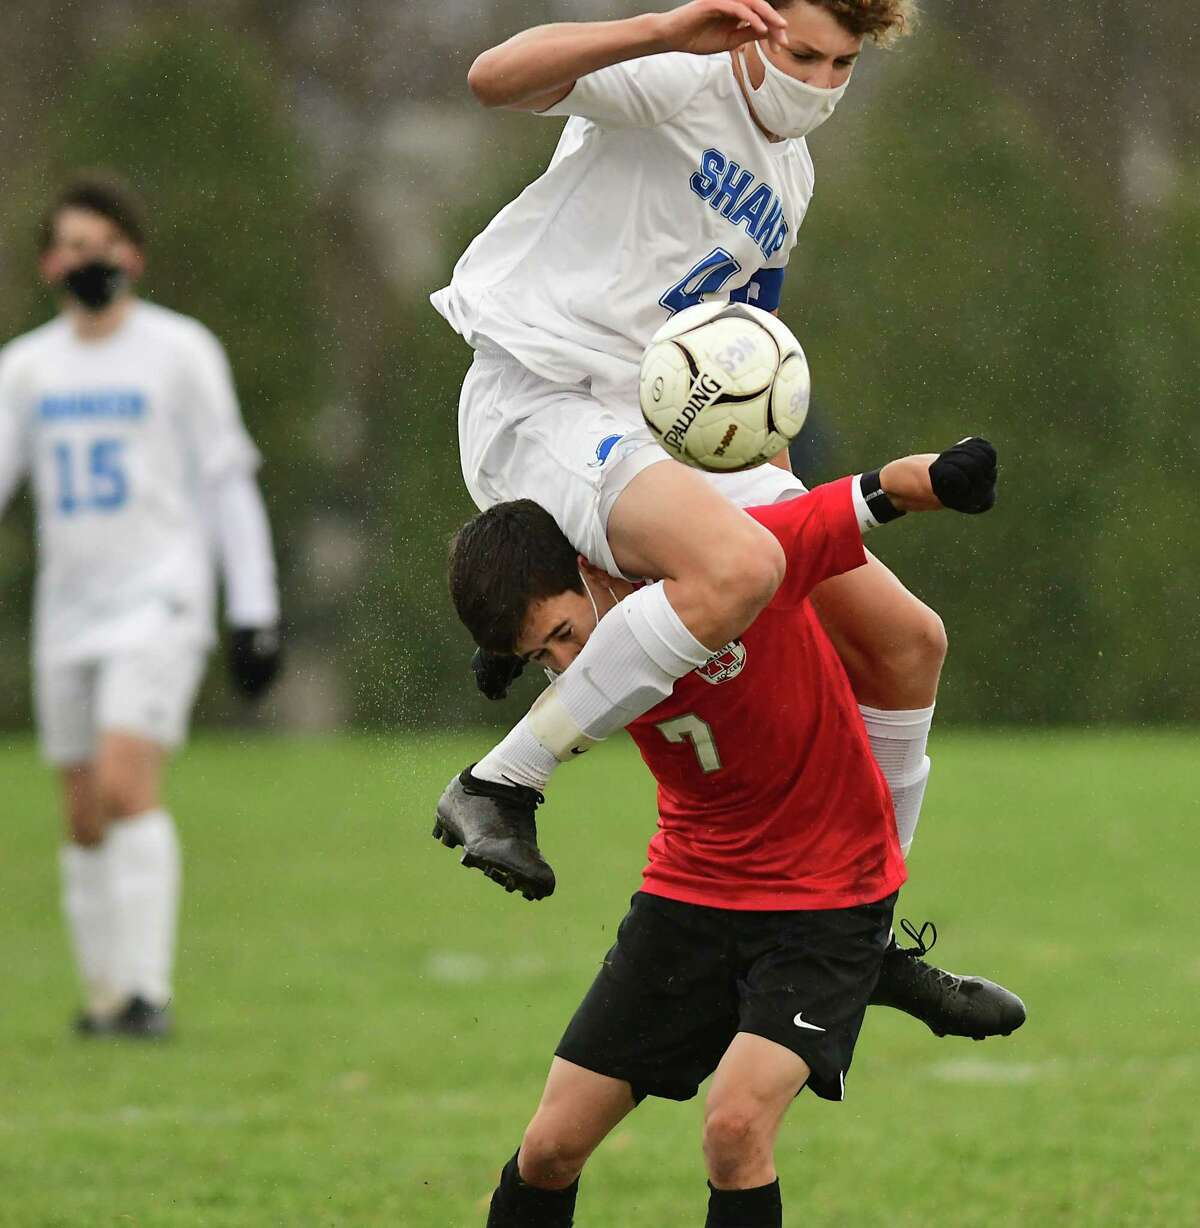 Shaker's Logan Drake ends up on top of Niskayuna's Matt Stiles as they battle for the ball during the Suburban Council boys' soccer quarterfinal on Tuesday, Nov. 17, 2020 in Niskayuna, N.Y. (Lori Van Buren/Times Union)